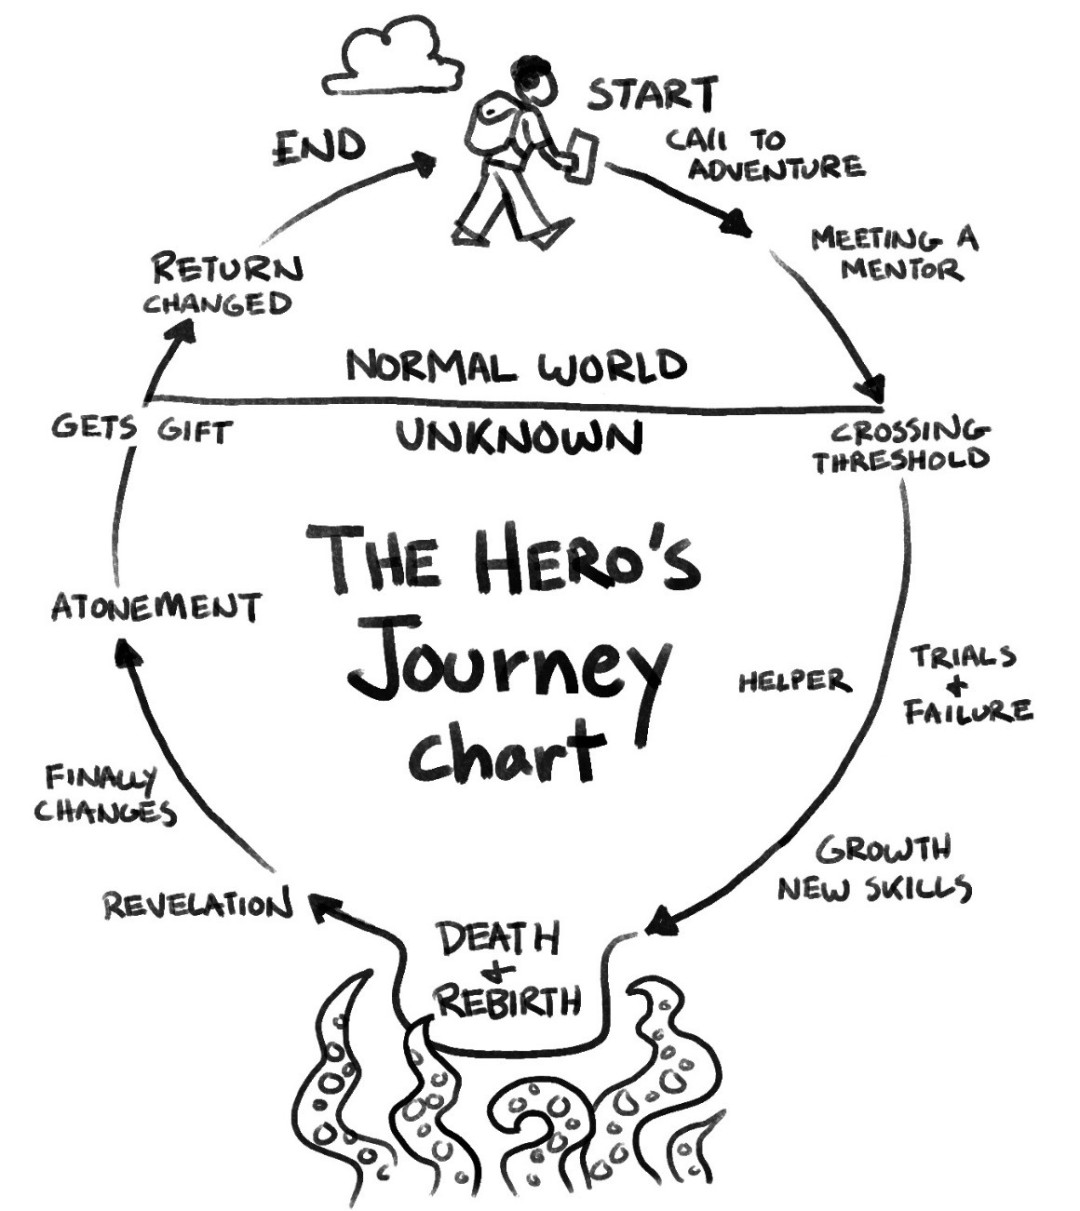 the hero's journey archetypal story